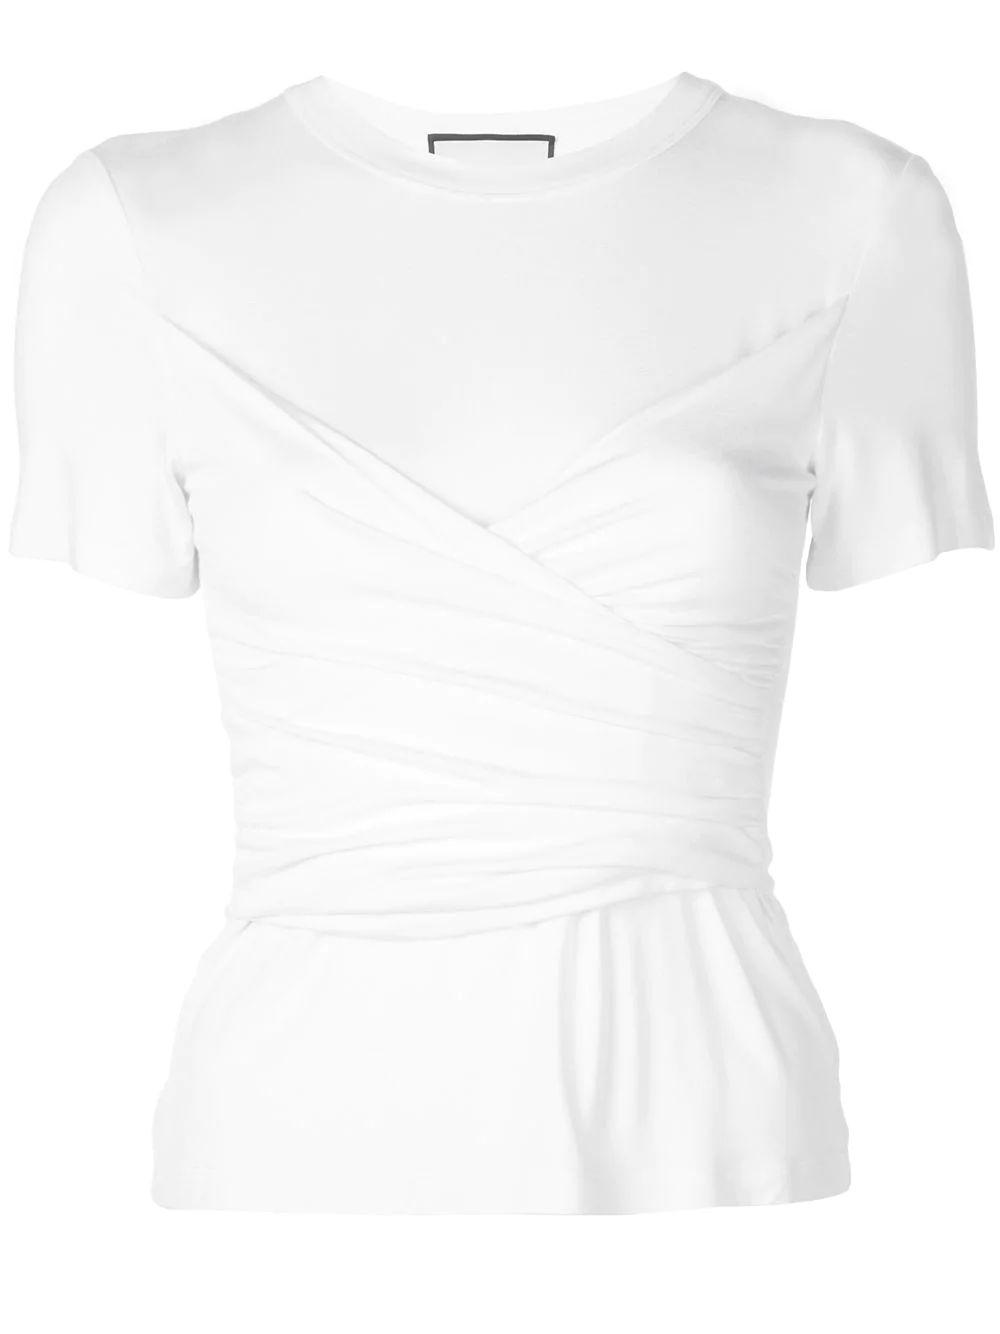 Soli Short Sleeve Knot Cross Front Top